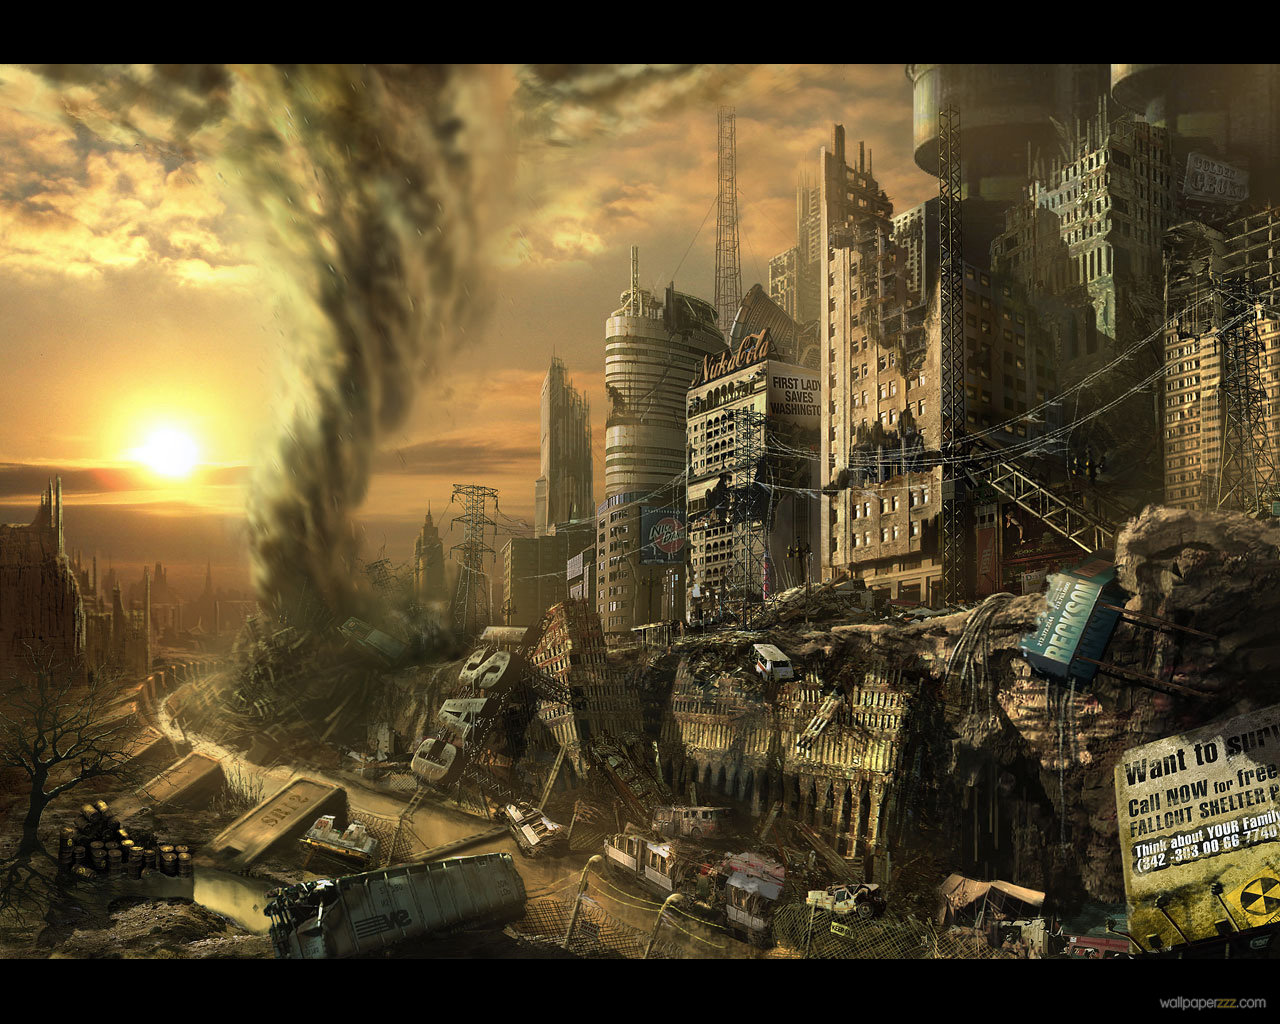 End of the World Background Download HD Wallpapers 1280x1024